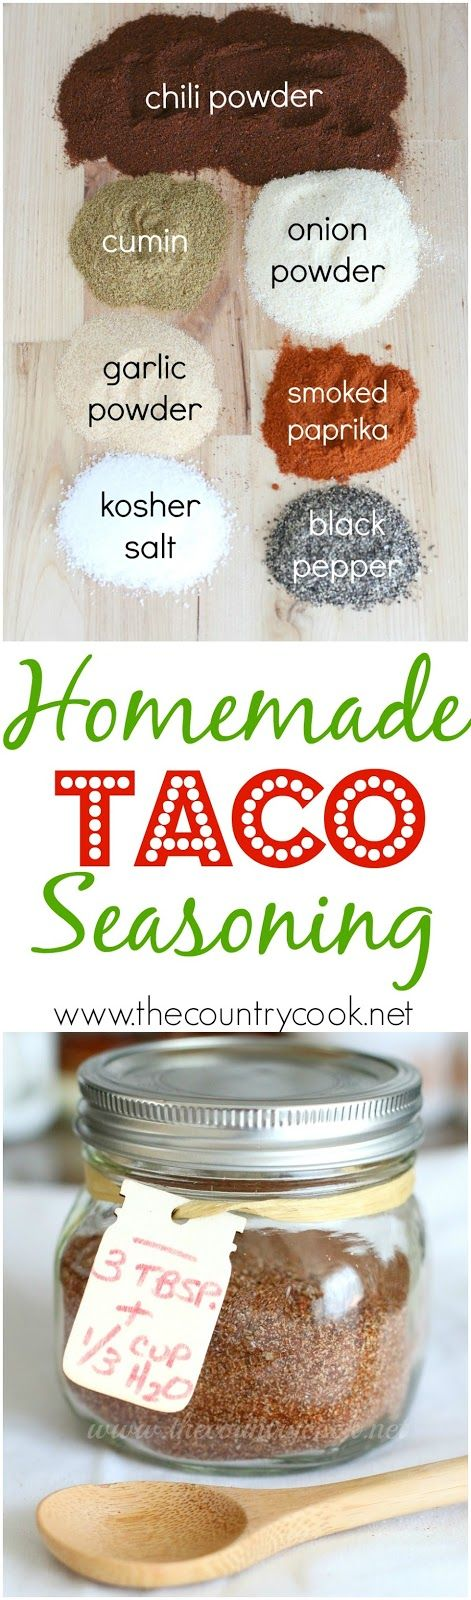 Homemade Taco Seasoning recipe from The Country Cook. Gluten-free, preservative-free but you  still get ALL the flavor! Makes for the best homemade tacos!: